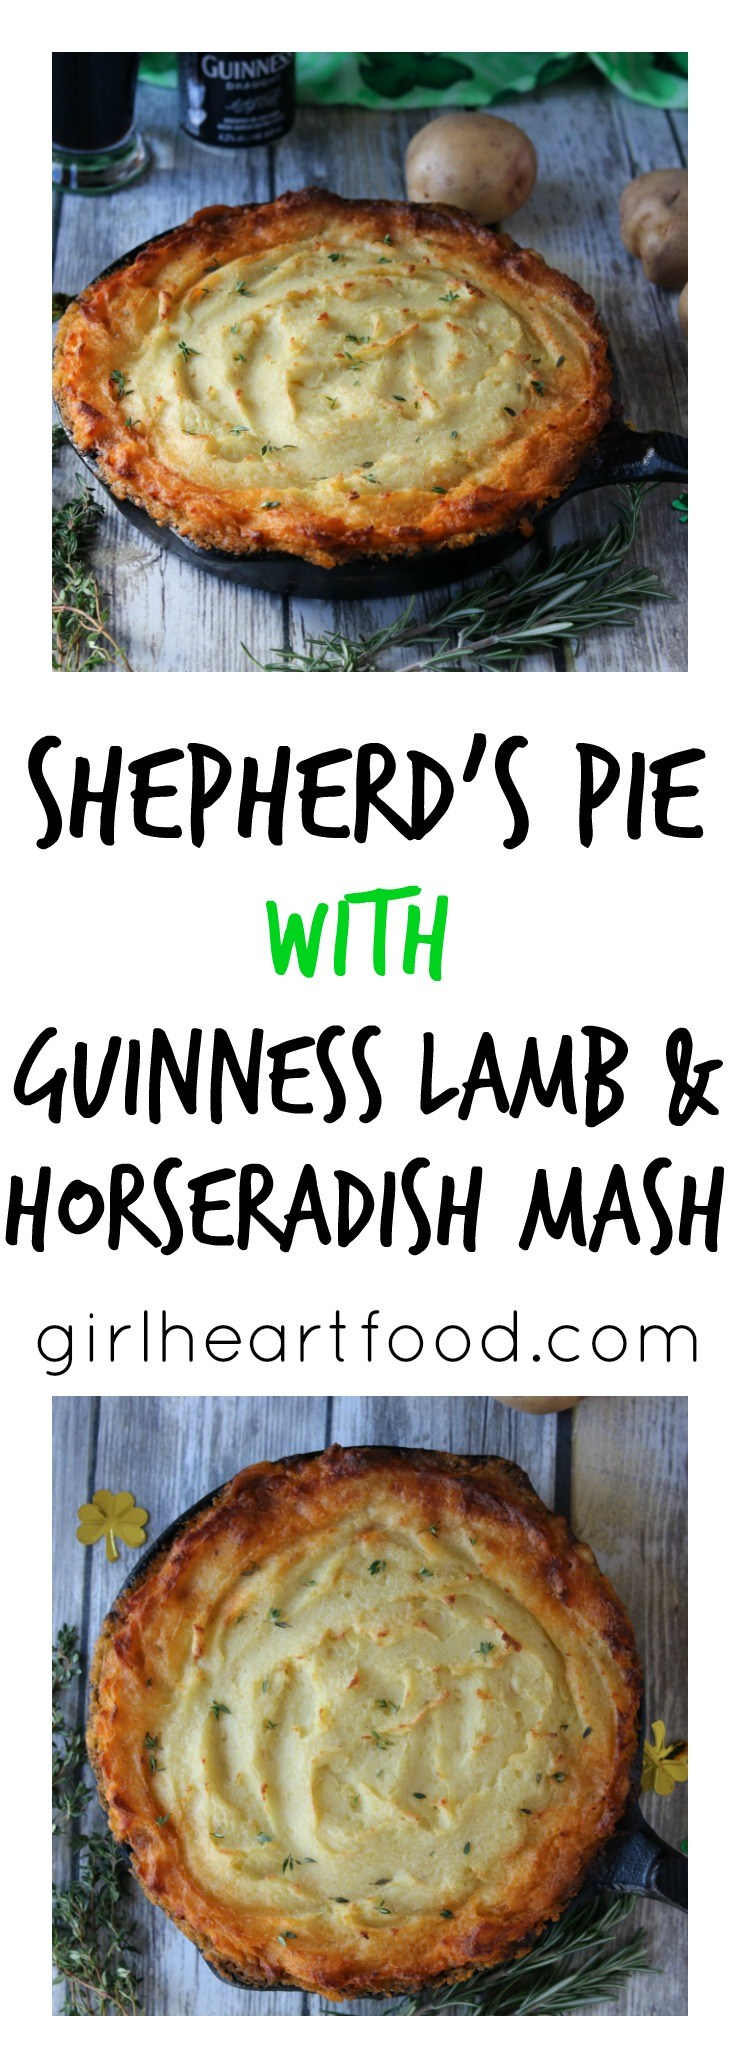 Sheperds-Pie-with-Guinness-Lamb-and-Horseradish-Mash-Tall-Pin